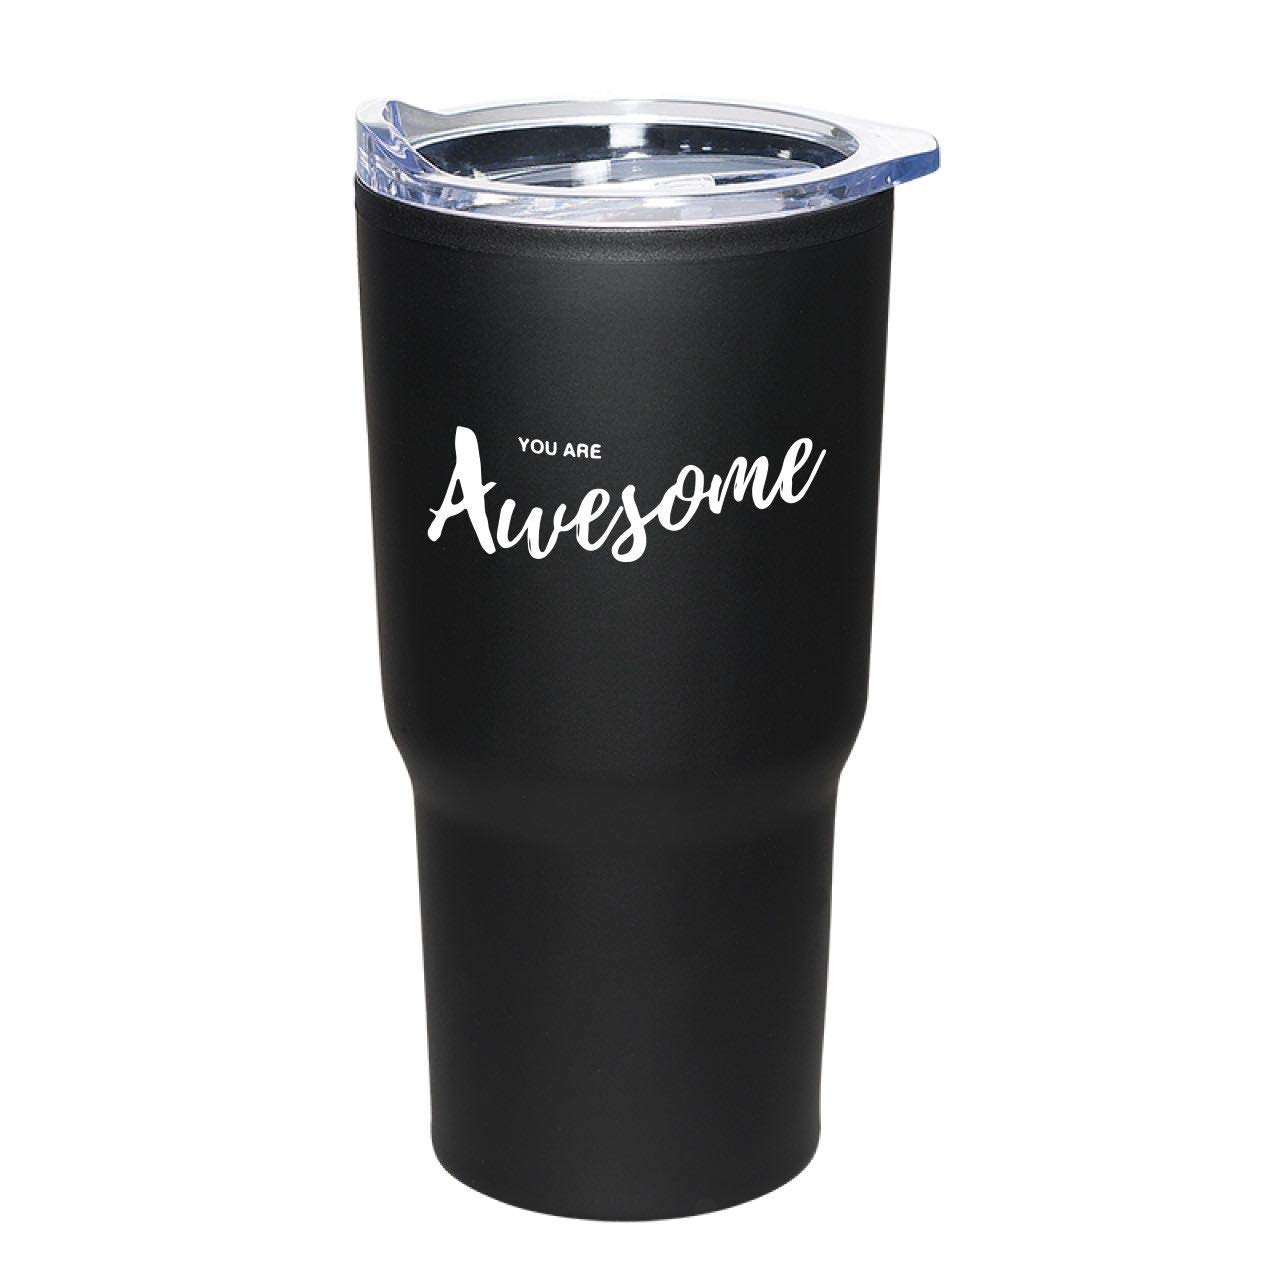 12- Piece Set''You Are Awesome'' Black 20 oz Stainless Tumblers/Employee Appreciation Gifts/Stainless Tumbler/Teacher Thanks/Corporate Thank You Travel Mugs/Nurse's Day Gifts